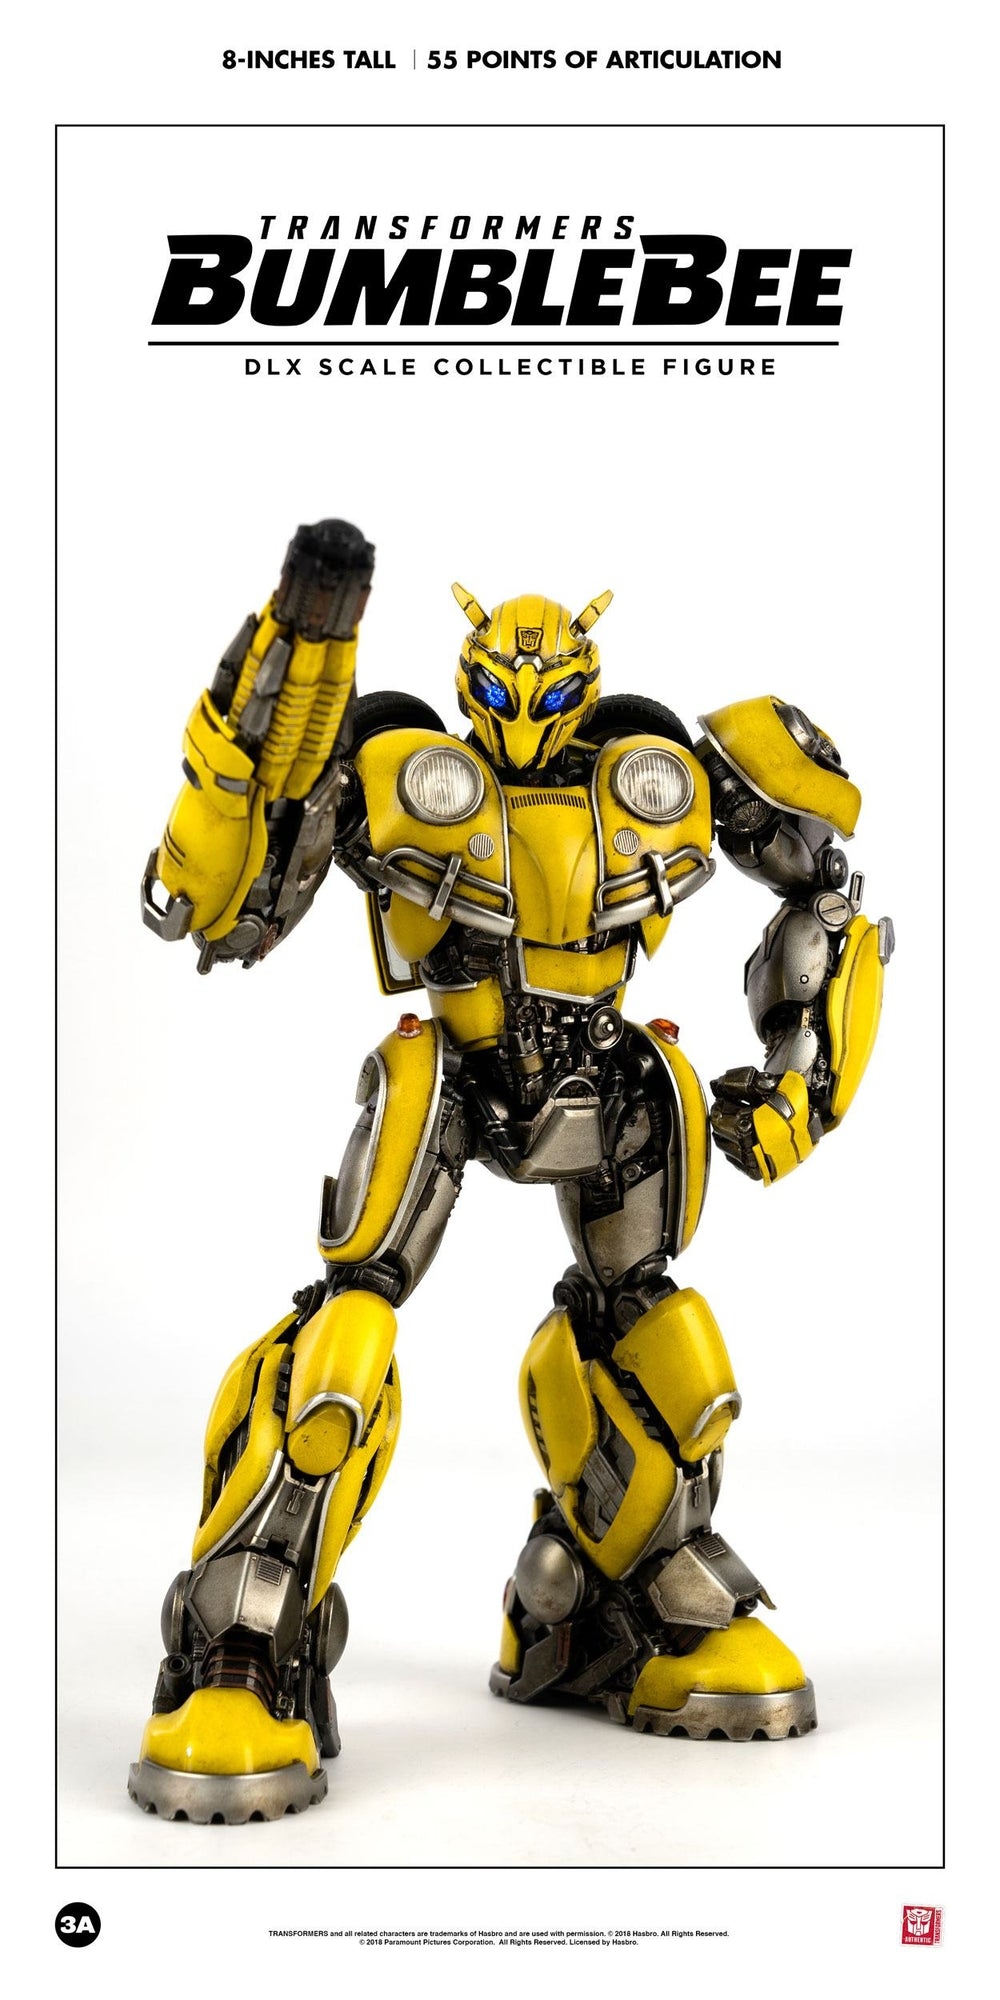 ThreeA Transformers Bumblebee Movie Bumblebee DLX Action Figure